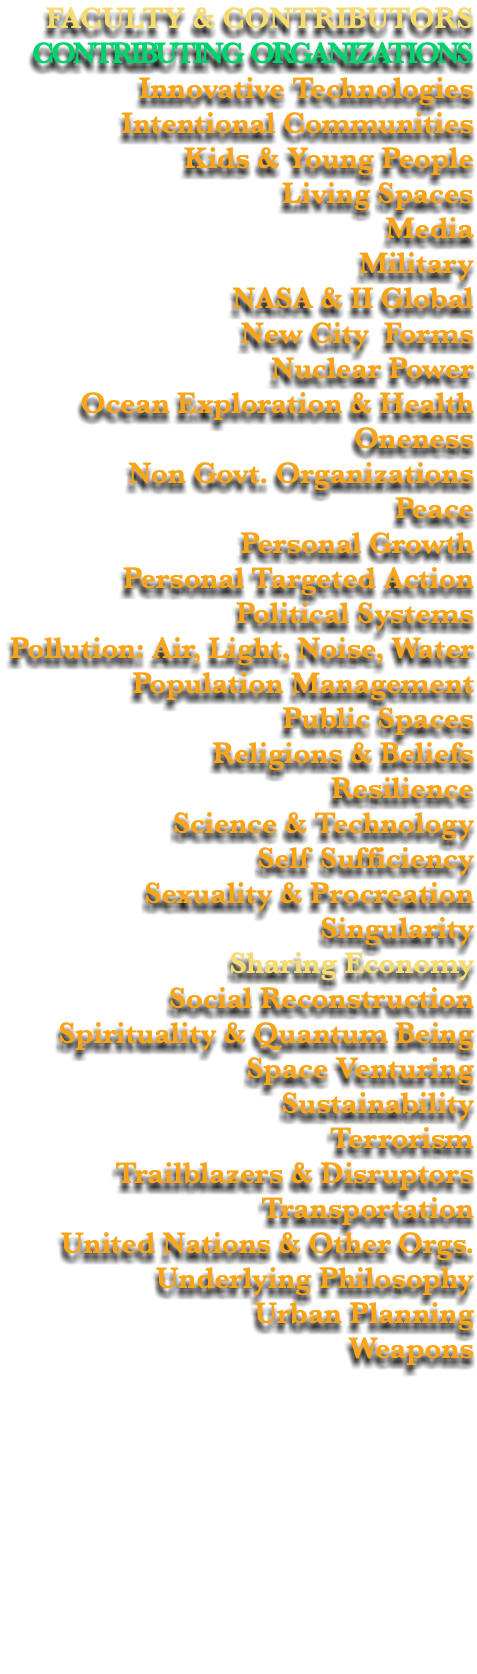 FACULTY & CONTRIBUTORS CONTRIBUTING ORGANIZATIONS Innovative Technologies Intentional Communities Kids & Young People Living Spaces Media Military NASA & II Global New City Forms Nuclear Power Ocean Exploration & Health Oneness Non Govt. Organizations Peace Personal Growth Personal Targeted Action Political Systems Pollution: Air, Light, Noise, Water Population Management Public Spaces Religions & Beliefs Resilience Science & Technology Self Sufficiency Sexuality & Procreation Singularity Sharing Economy Social Reconstruction Spirituality & Quantum Being Space Venturing Sustainability Terrorism Trailblazers & Disruptors Transportation United Nations & Other Orgs. Underlying Philosophy Urban Planning Weapons